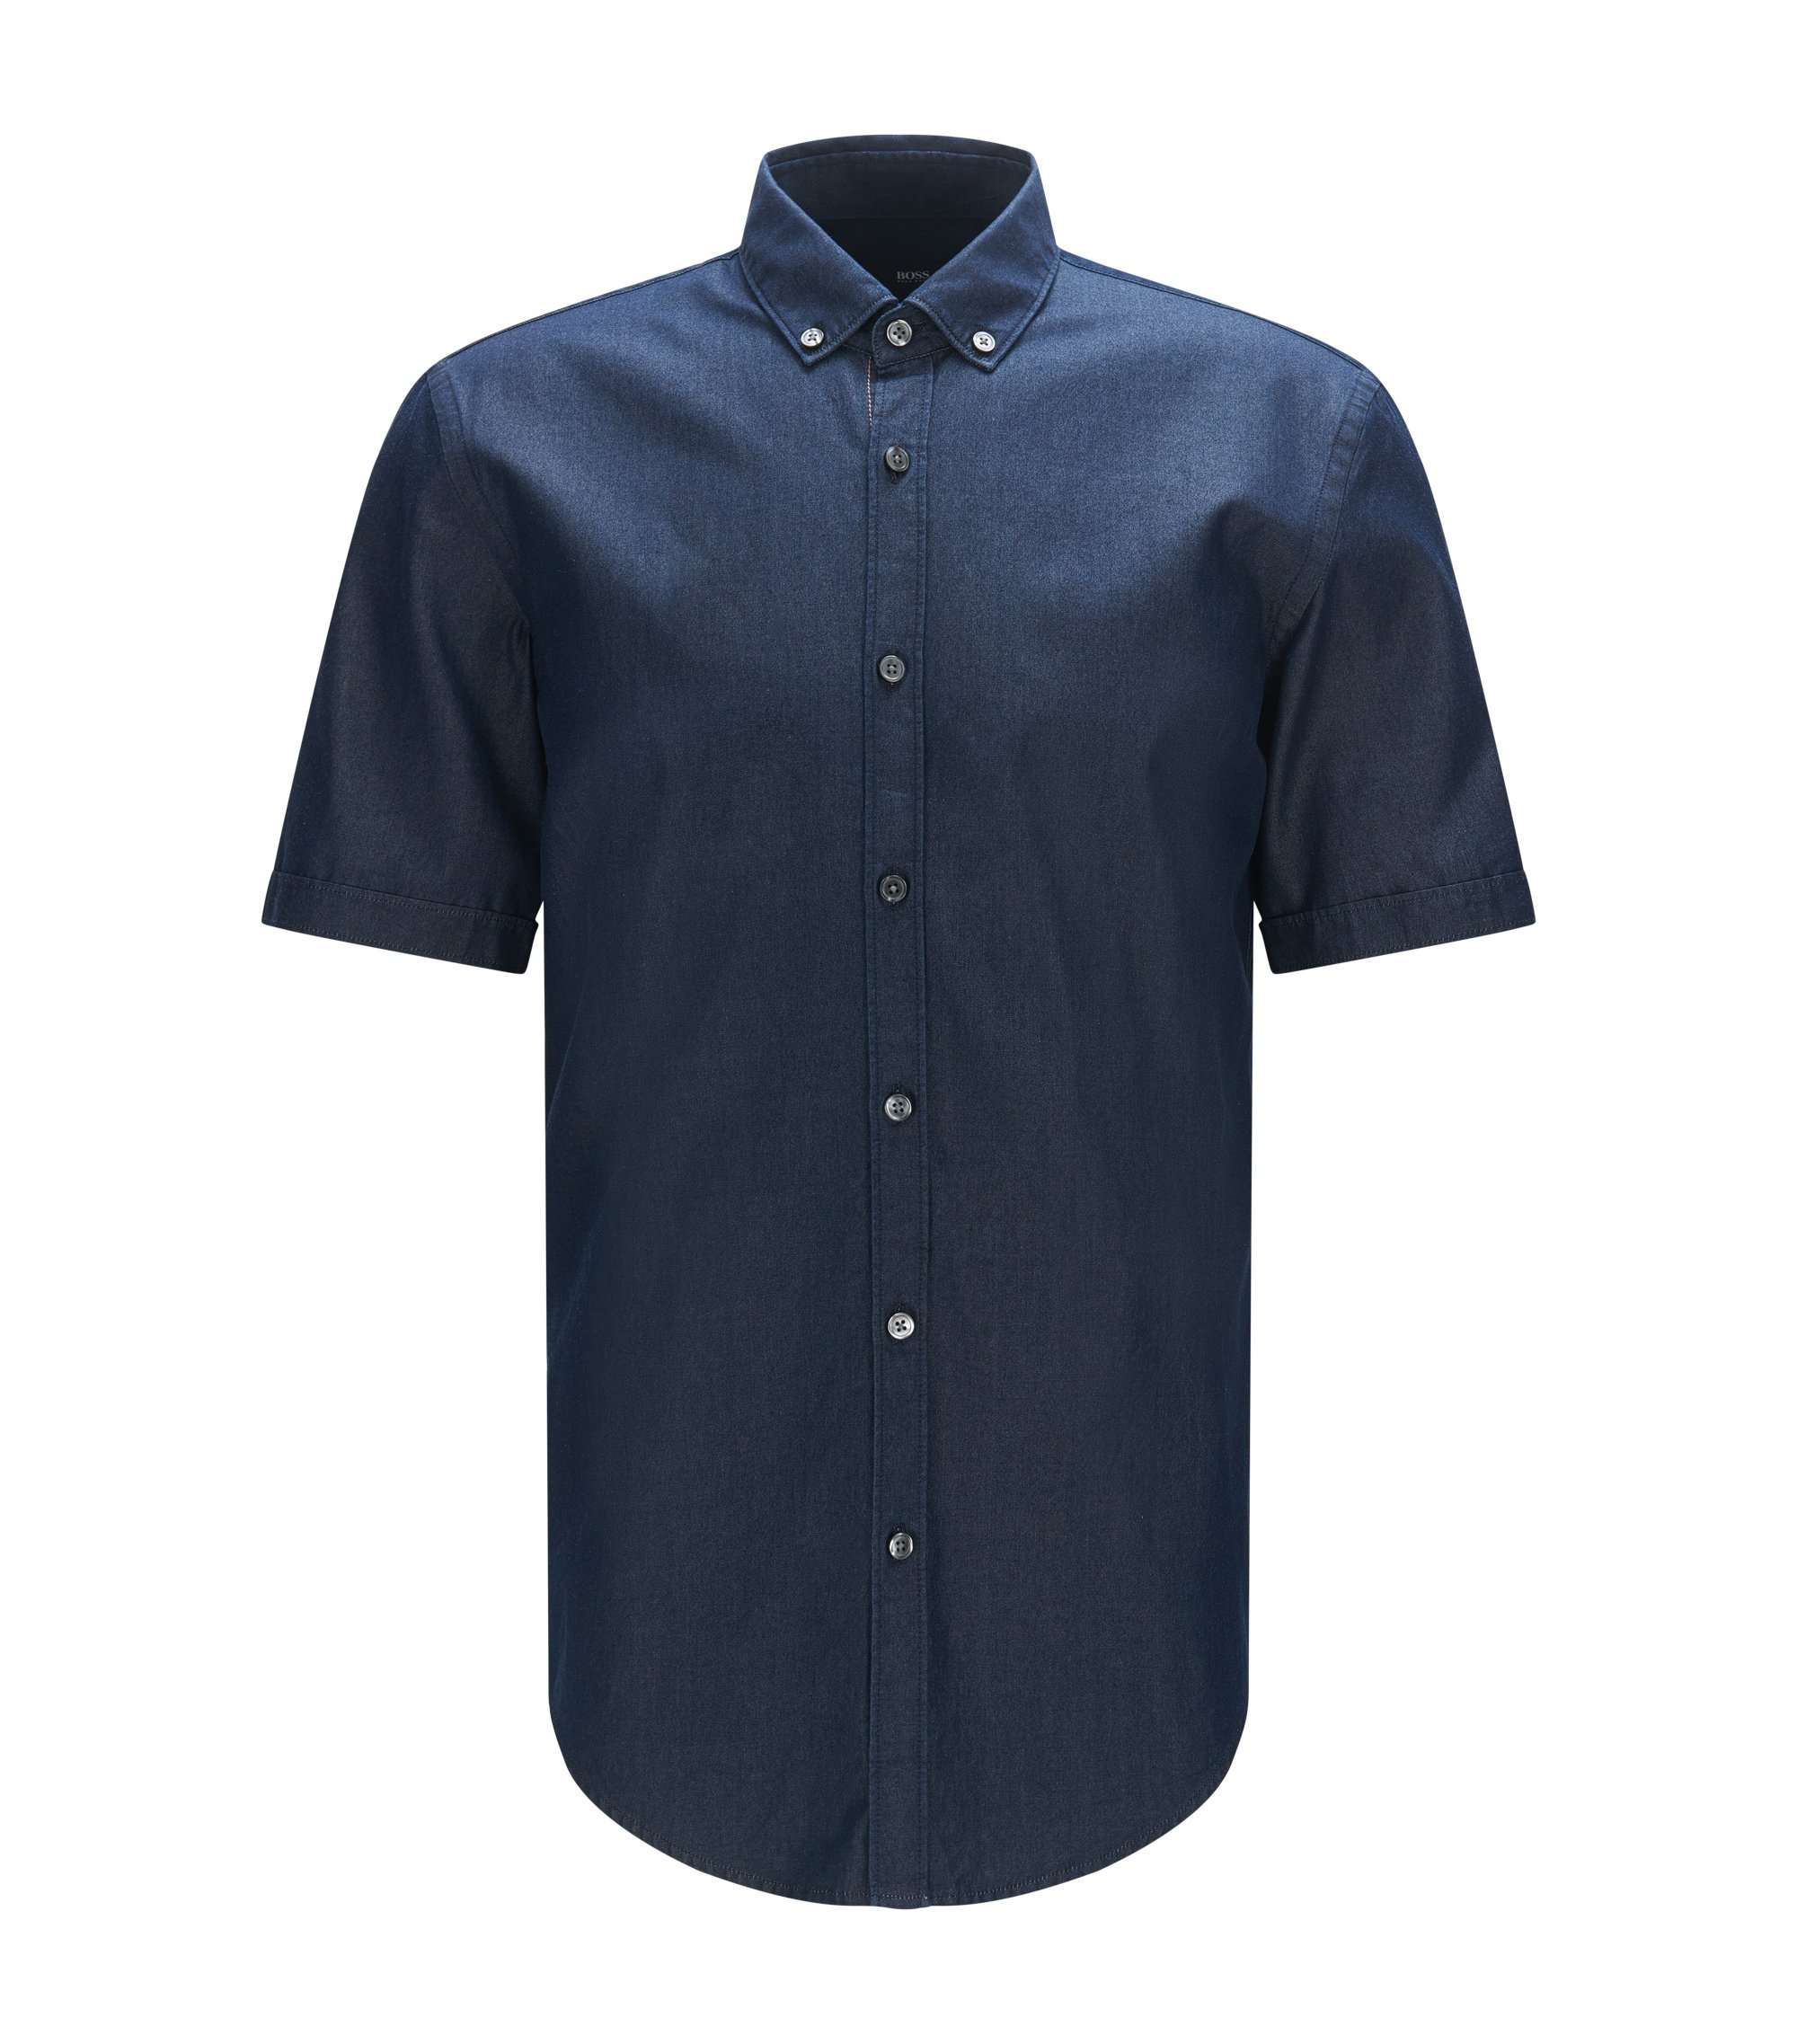 Chambray Cotton Button Down Shirt, Slim Fit | Rik, Dark Blue